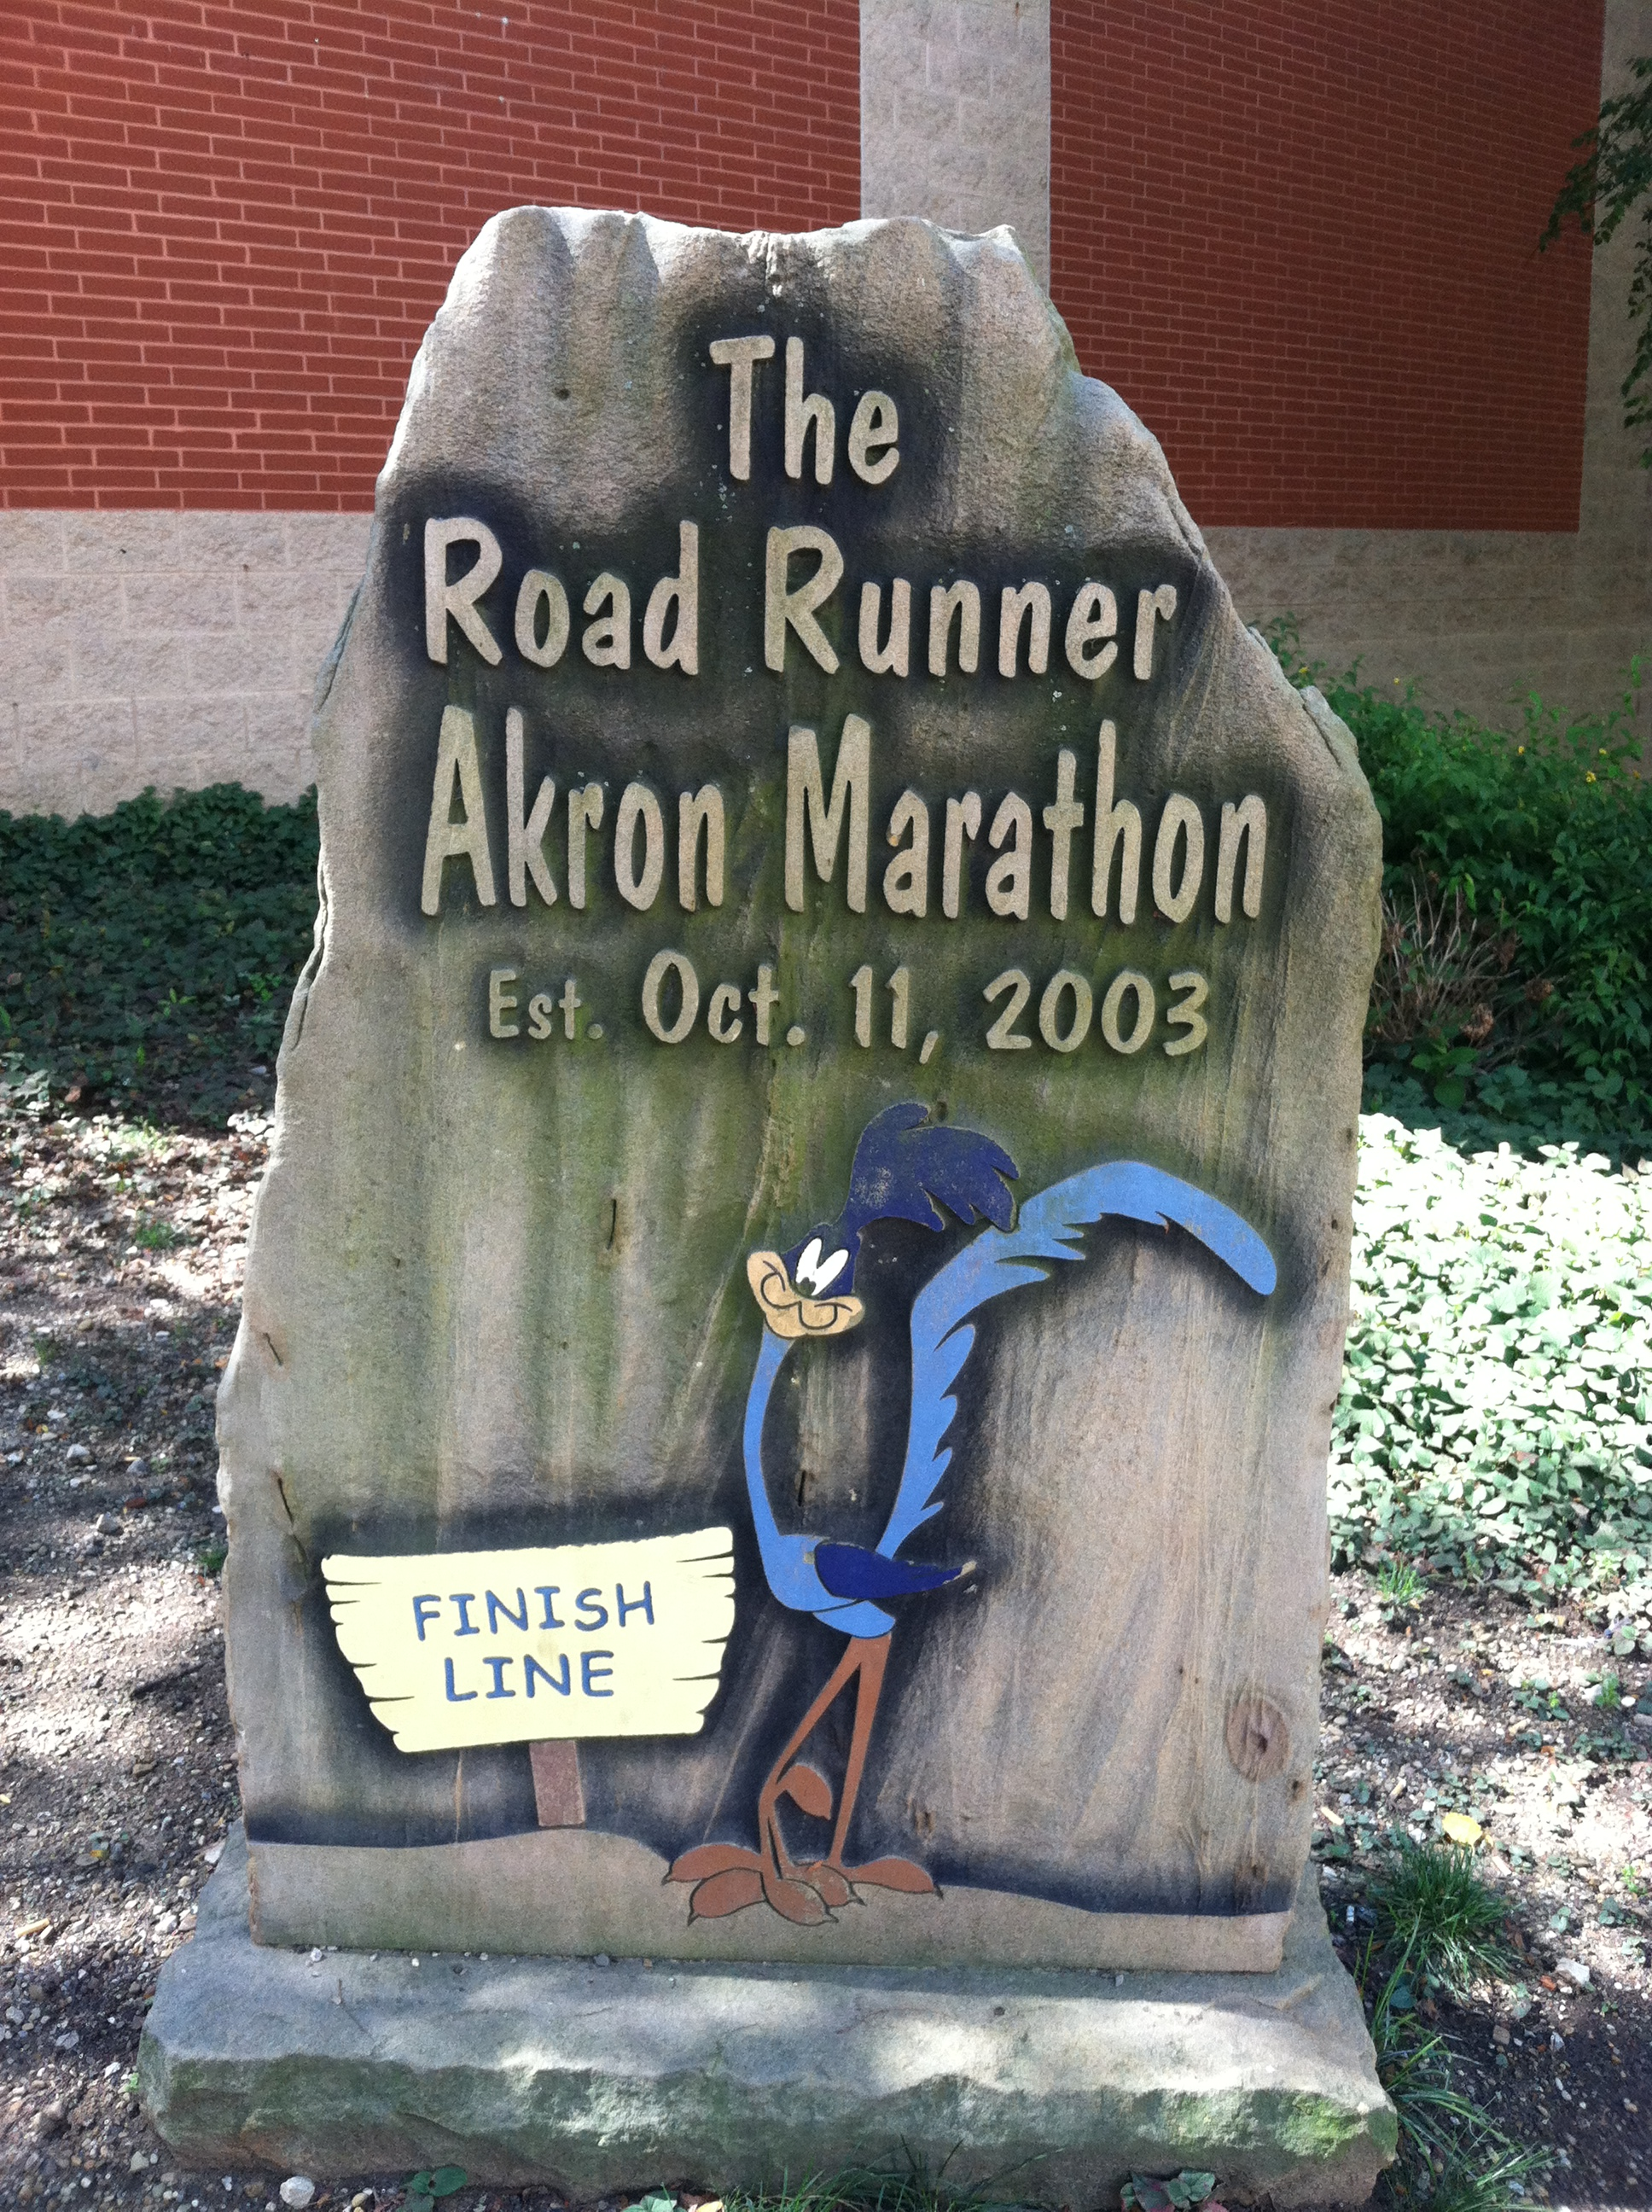 Running For Redemption, A Review of the 2013 Akron Half Marathon